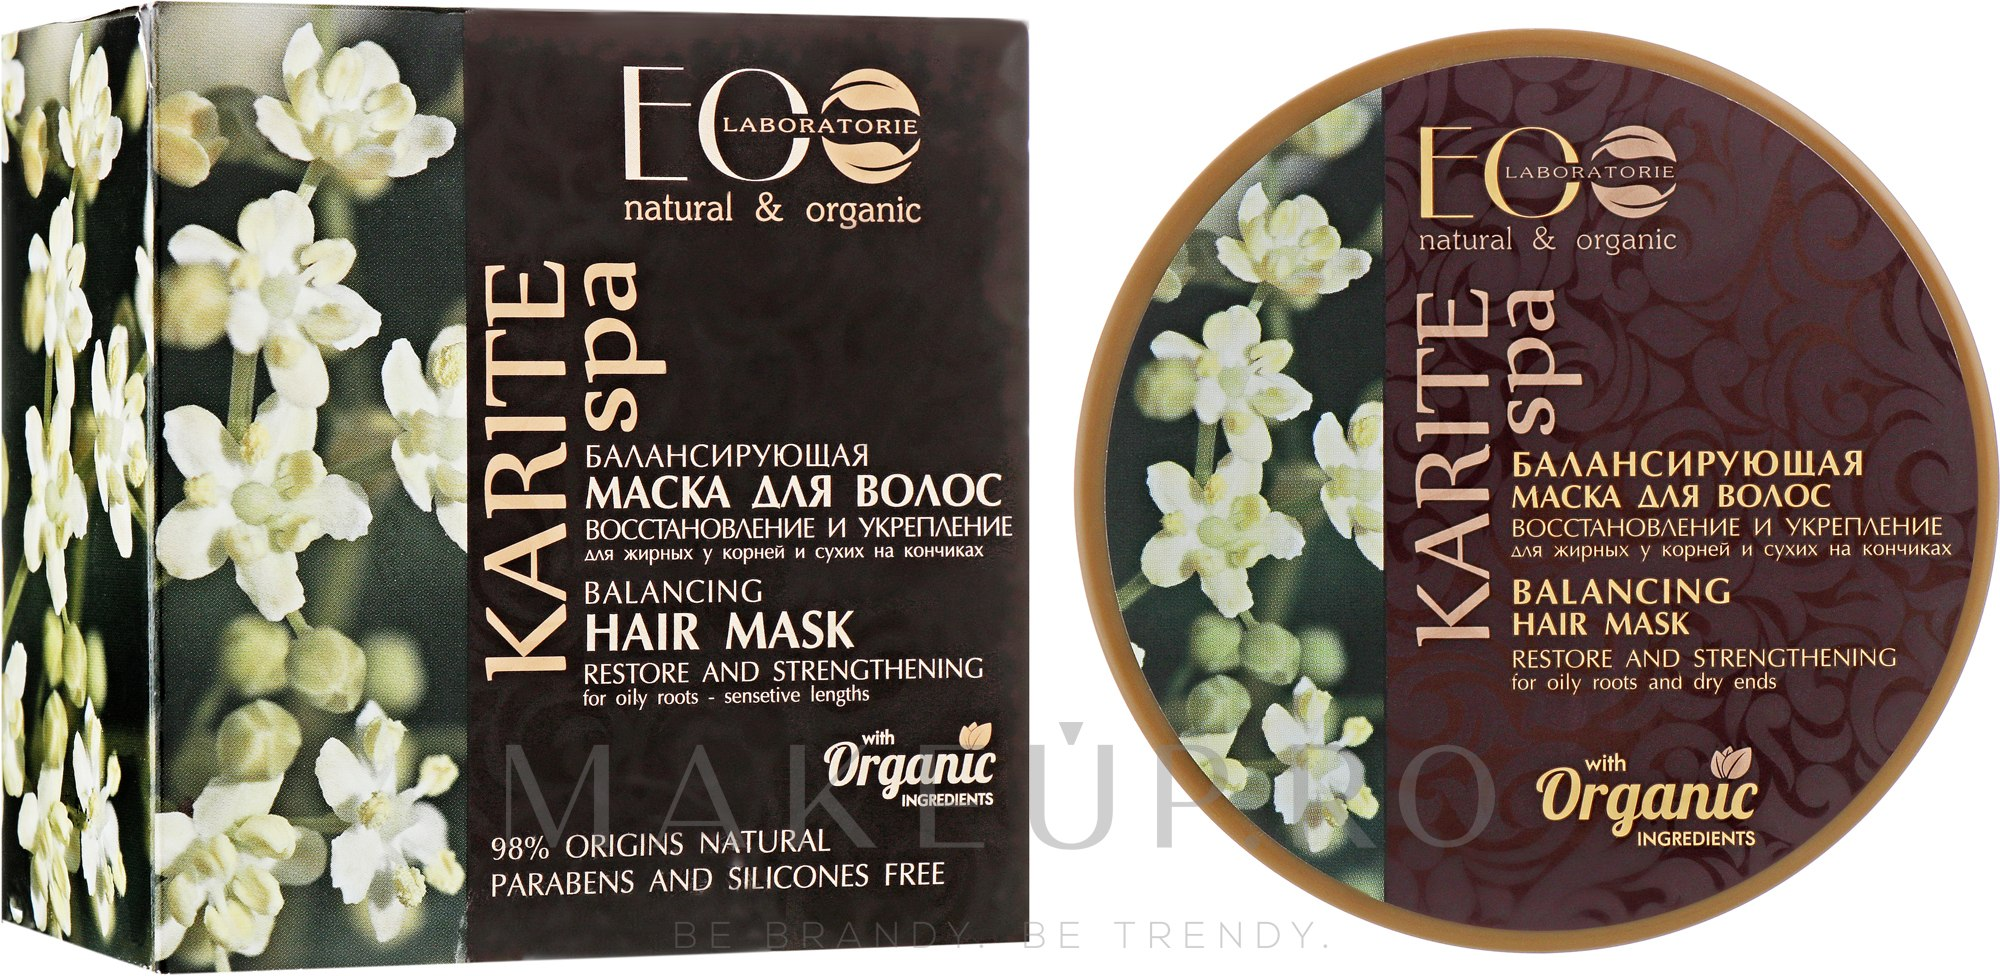 "Mască echilibrantă de păr ""Restaurare și întărire"" - ECO Laboratorie Karite SPA Hair Mask — Imagine 200 ml"